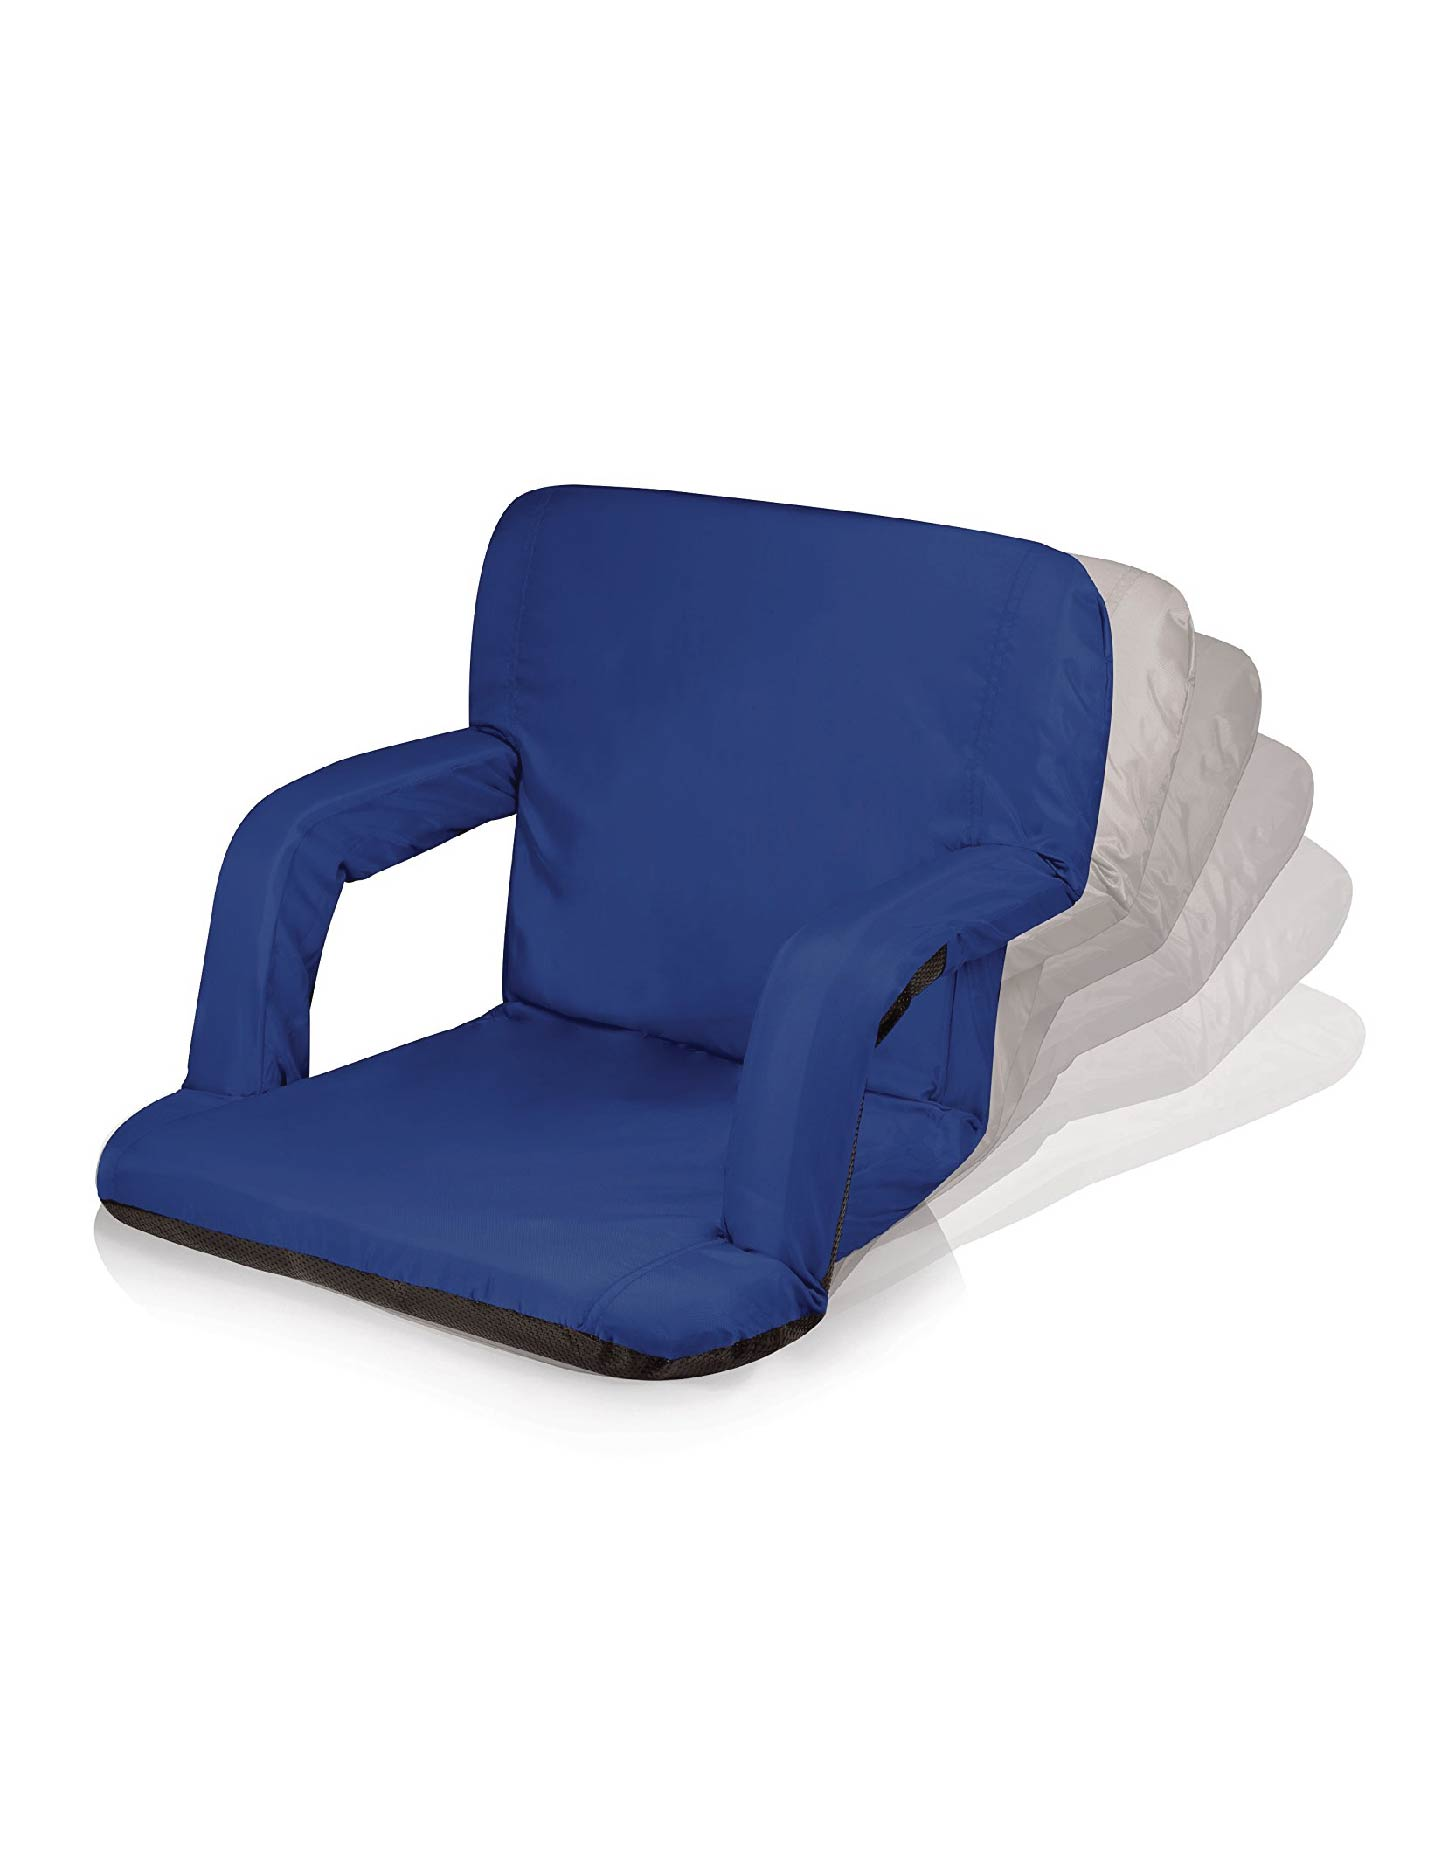 Picnic Folding Chair With Backrest Stayfithk